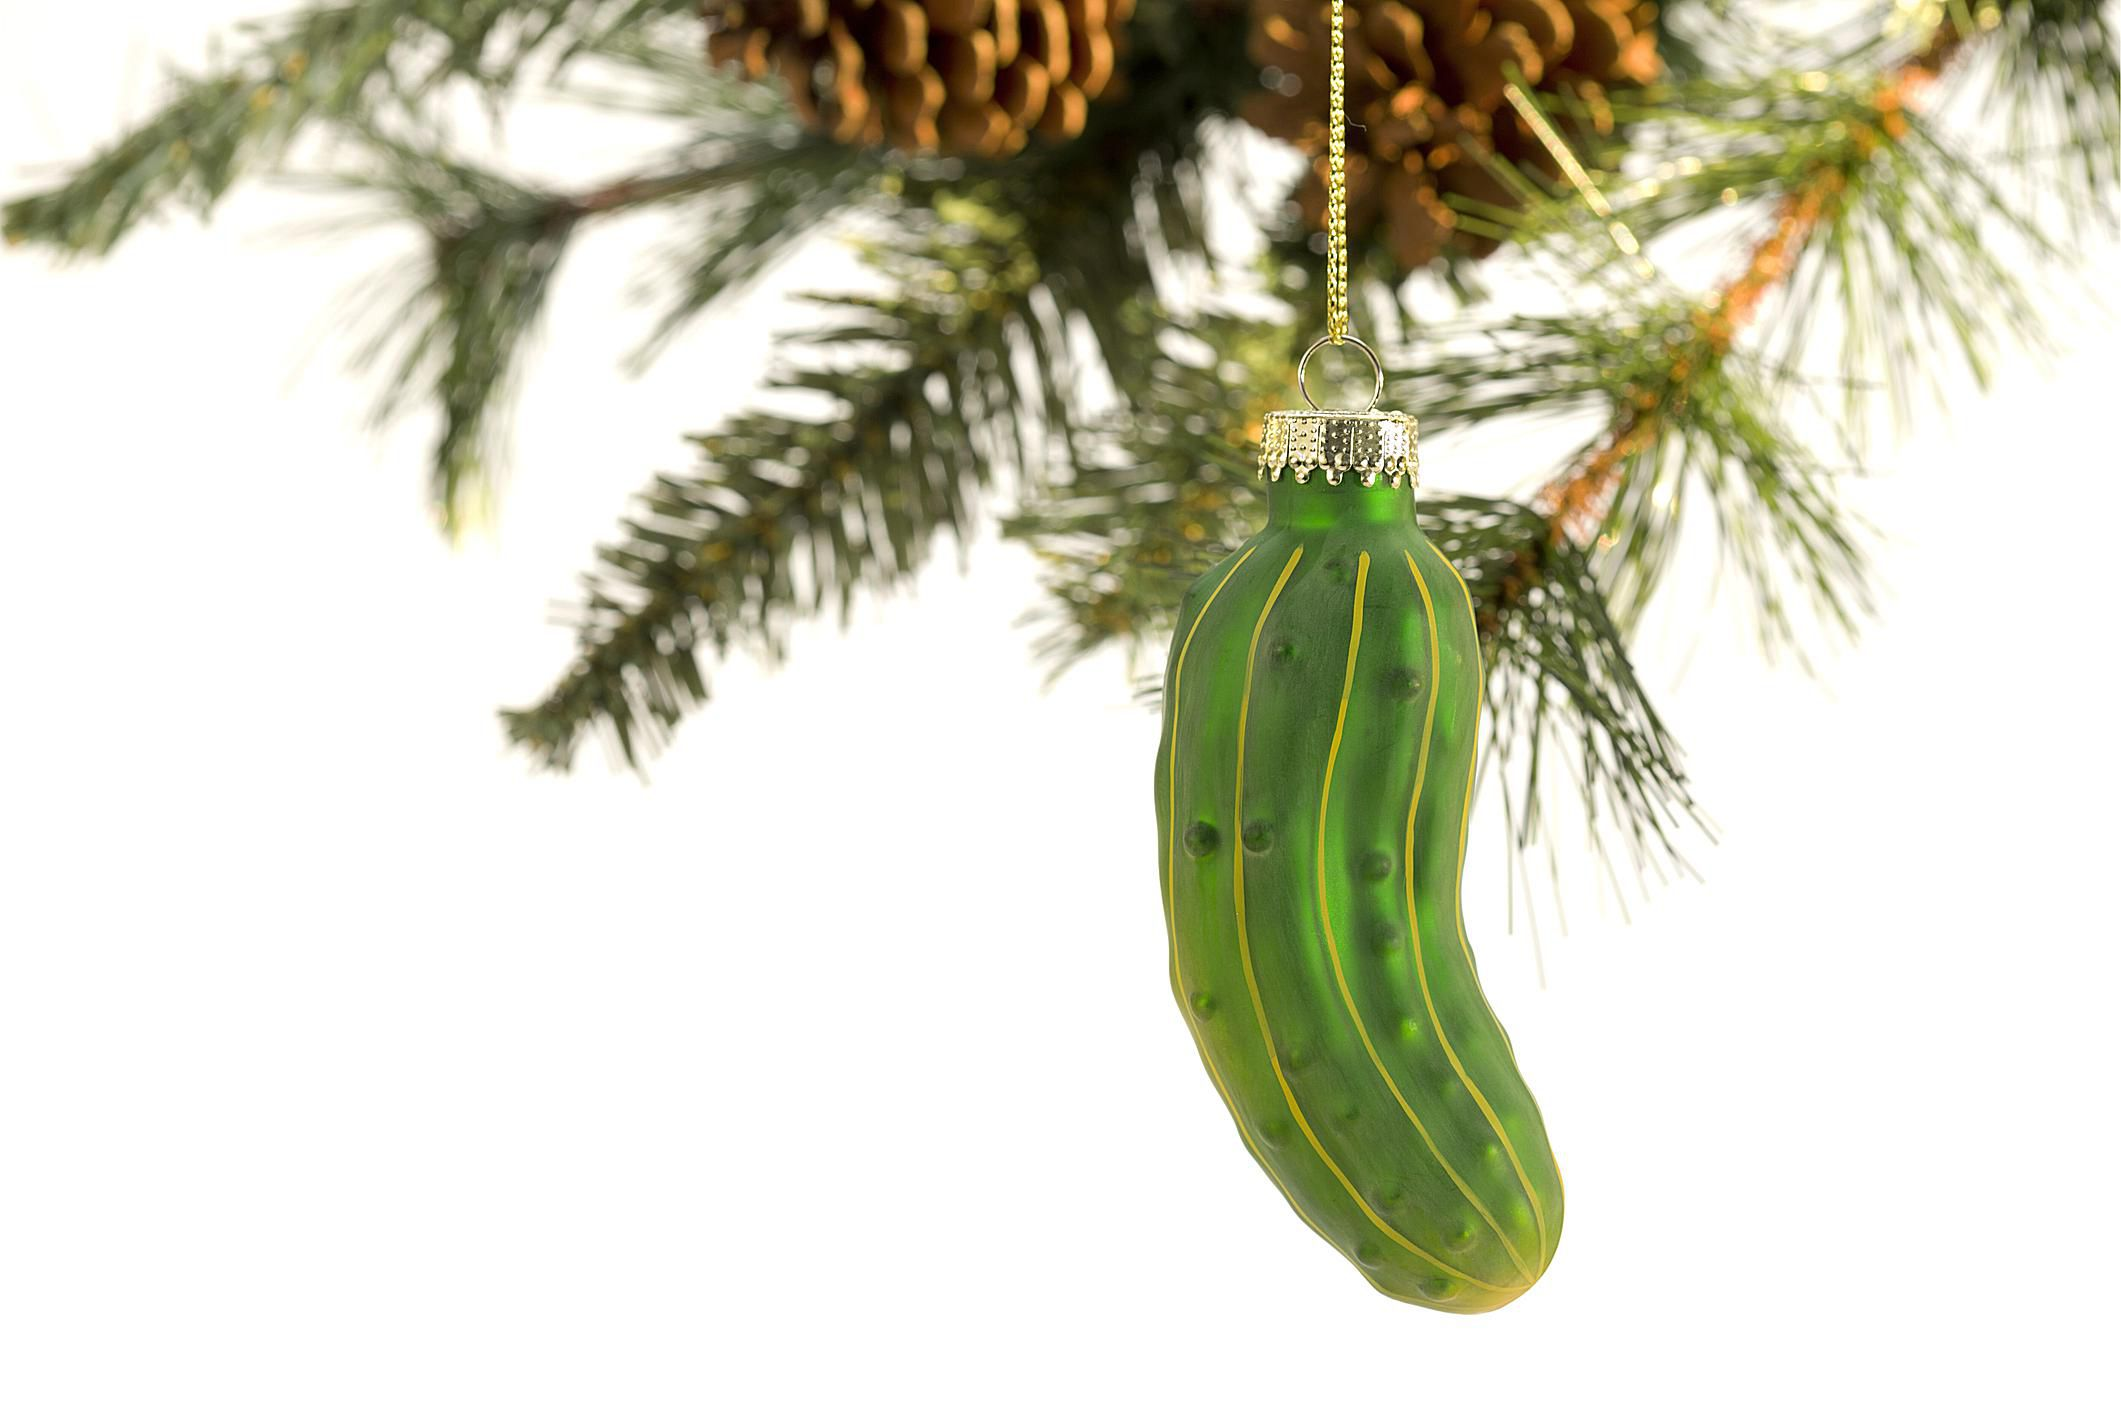 The German Christmas Pickle Tradition: Myth or Reality?